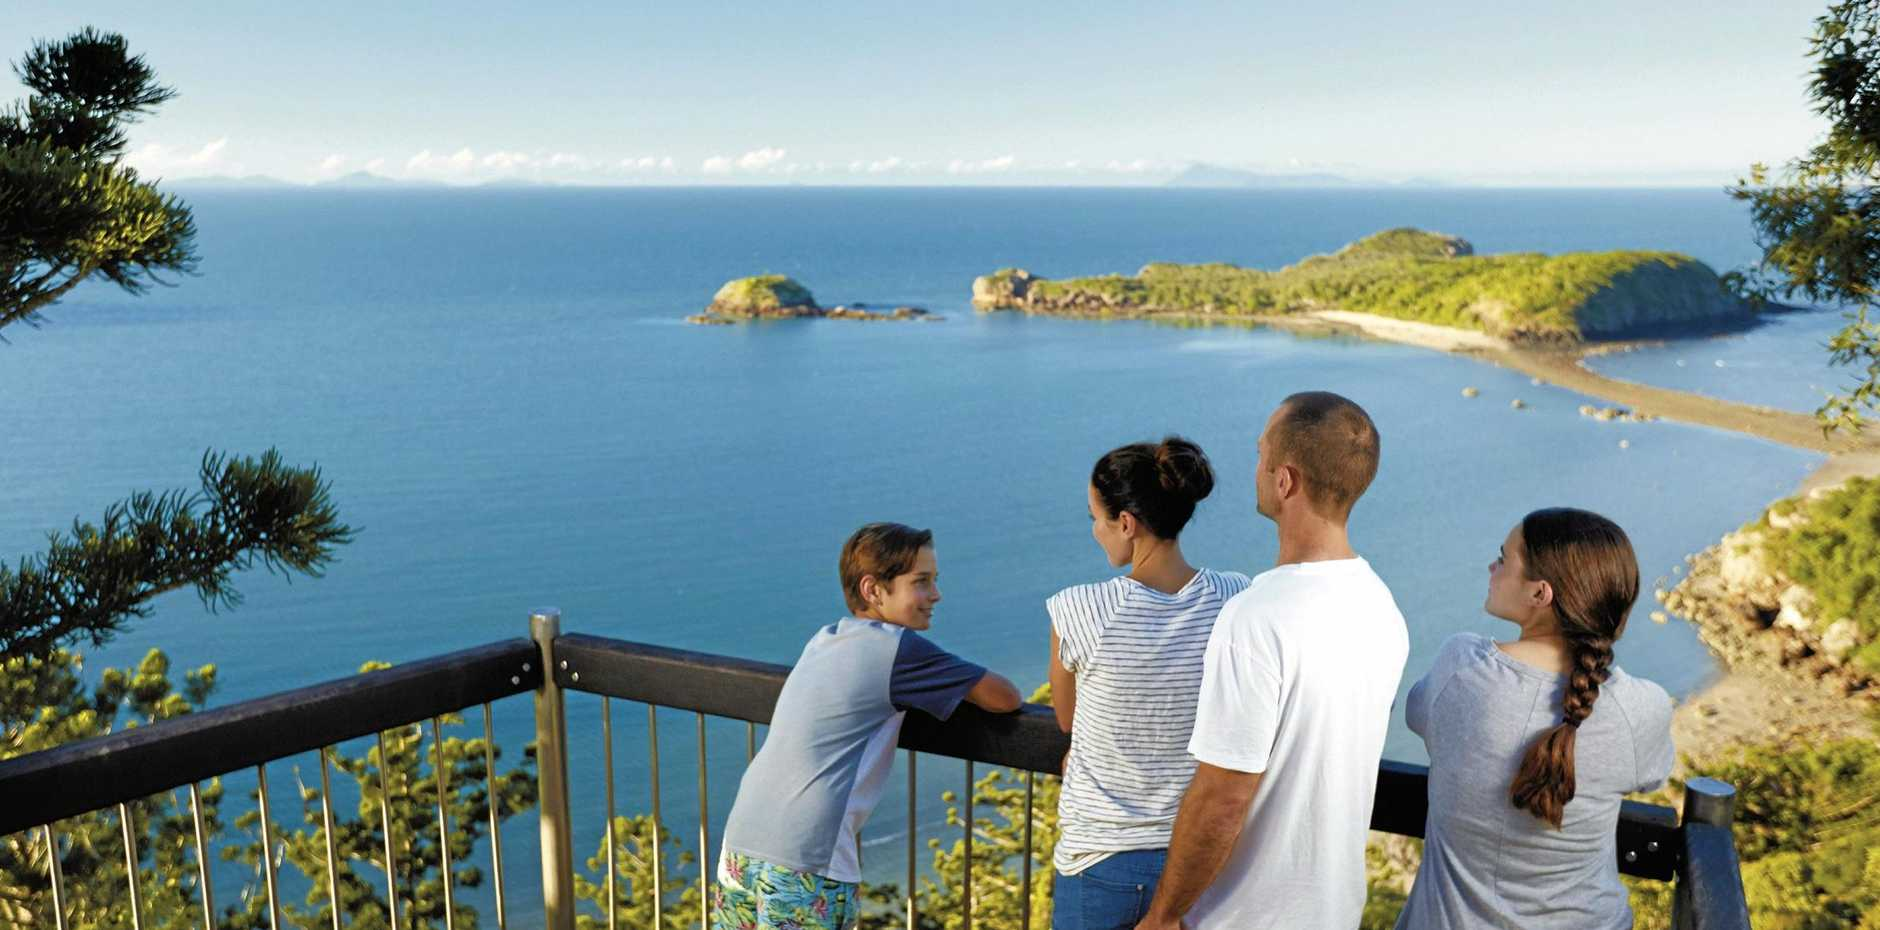 Mackay Tourism has recorded seven successive quarters of growth in both domestic and international traveller numbers.